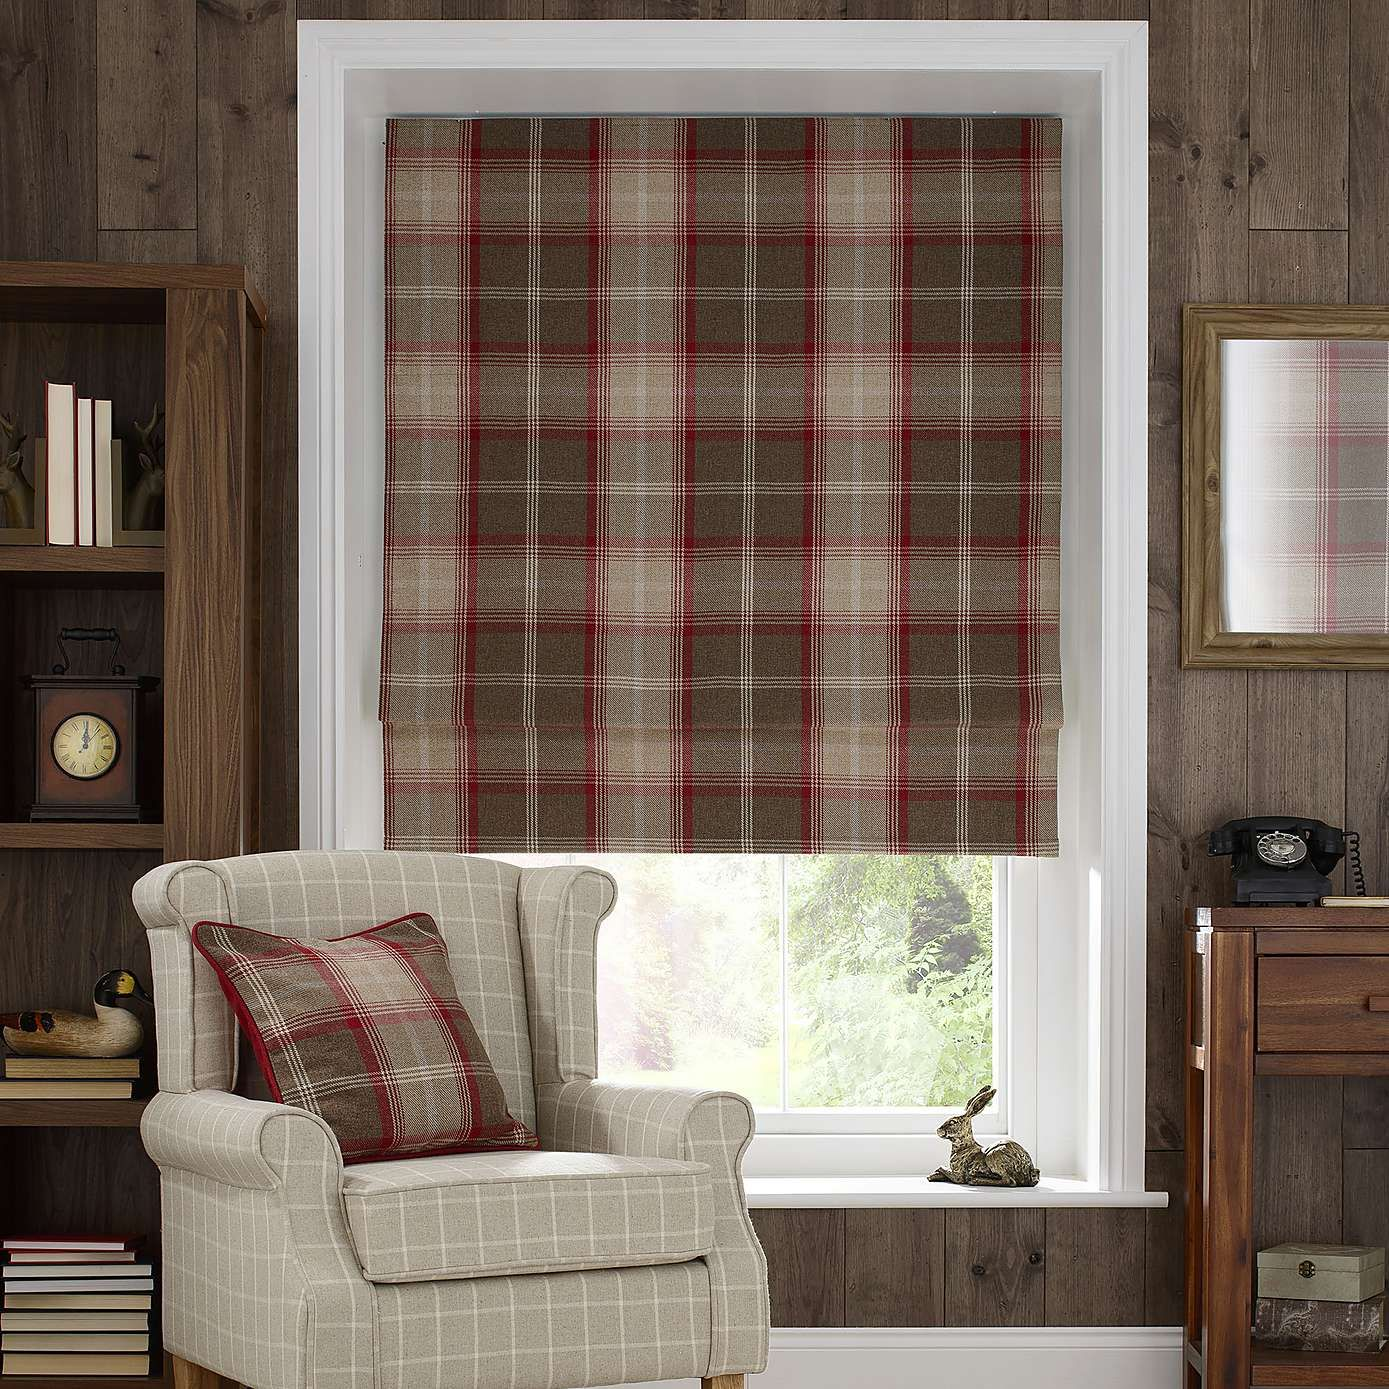 Plaid Curtains For Living Room Red Highland Check Blackout Roman Blind Dunelm Living Room